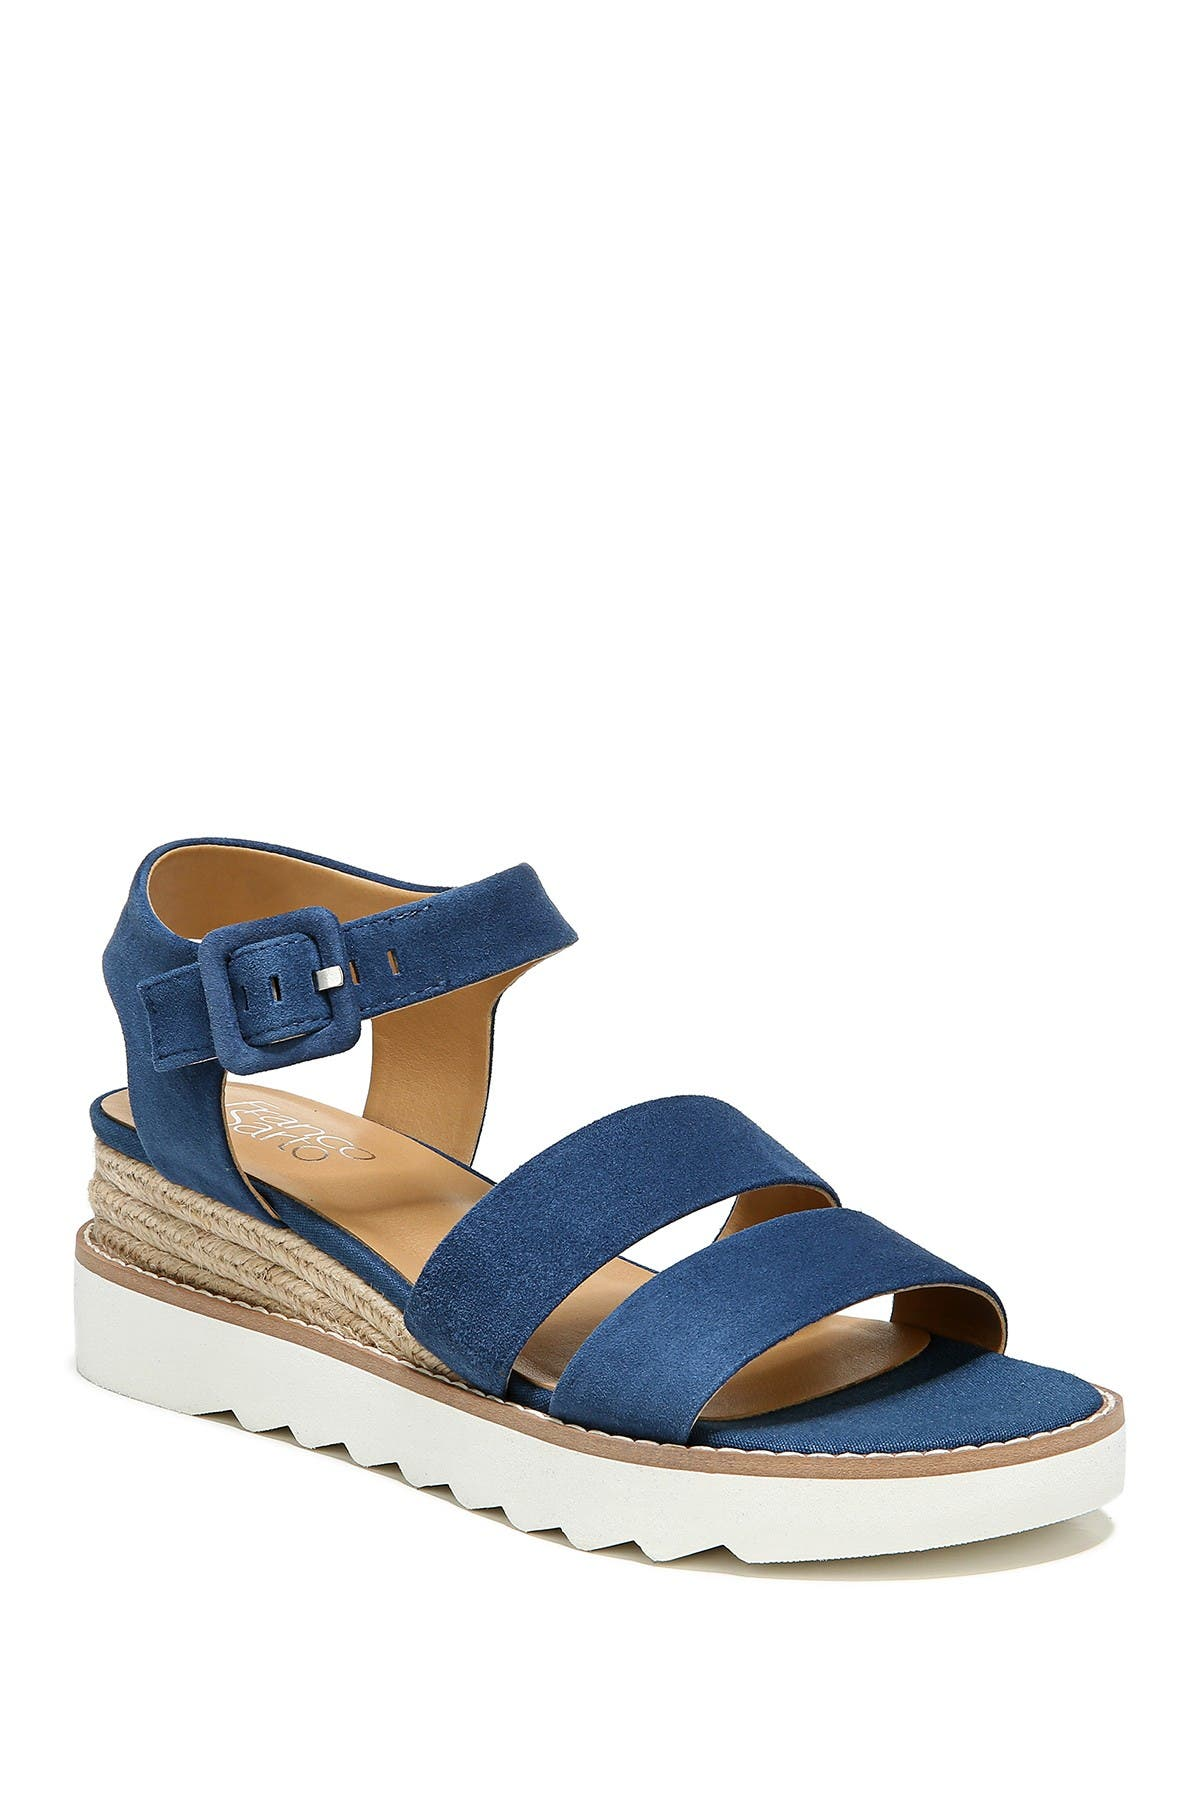 Image of Franco Sarto Colton Leather Wedge Espadrille Sandal